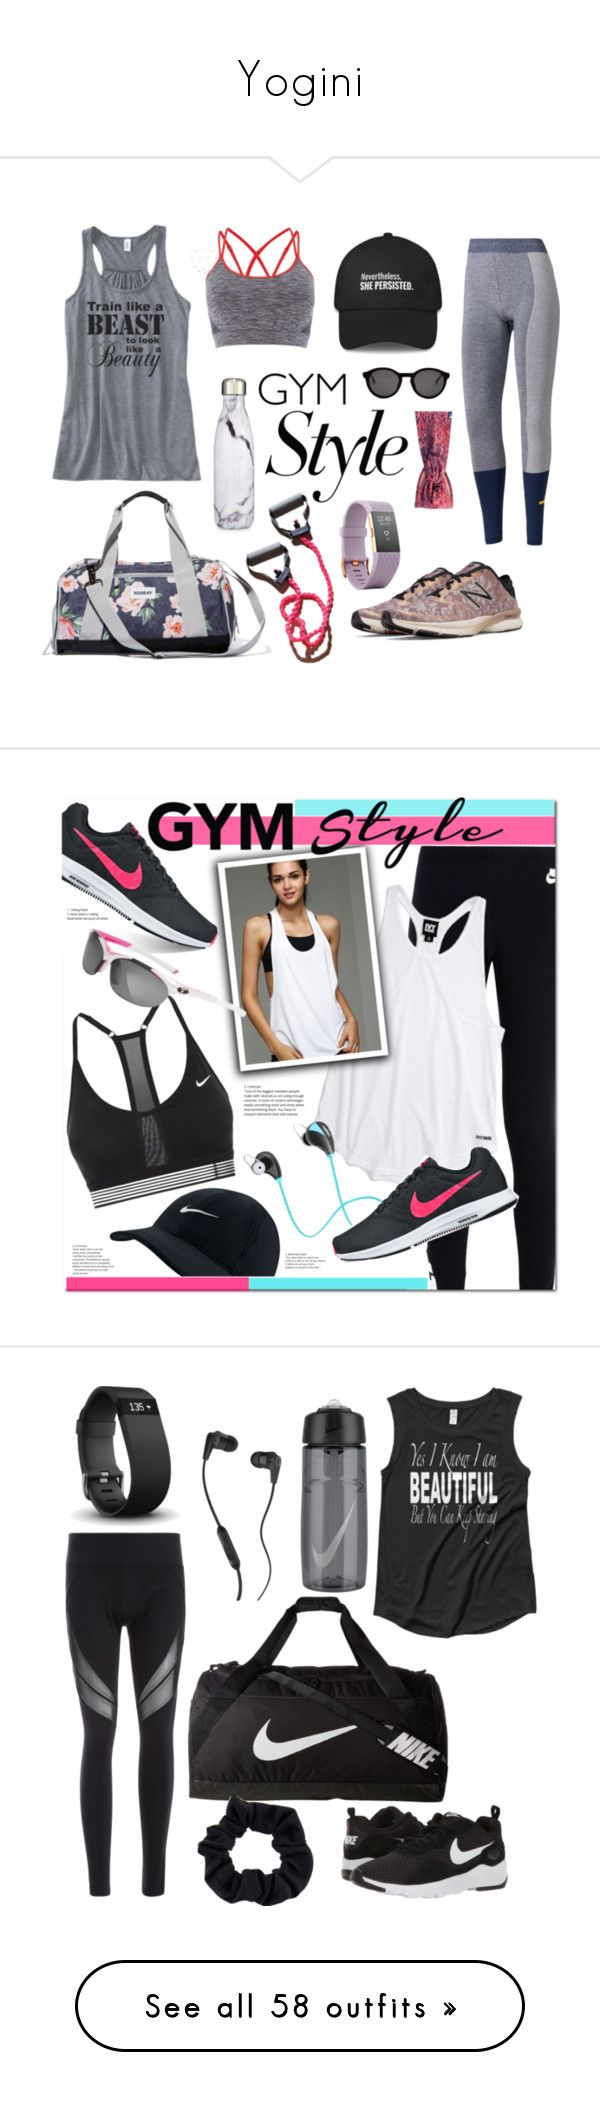 """""""Yogini"""" by evangel-dccx ❤ liked on Polyvore featuring activewear, activewear tops, tops, black, tanks, women's clothing, athletic sportswear, adidas, Vooray and House of Fraser"""